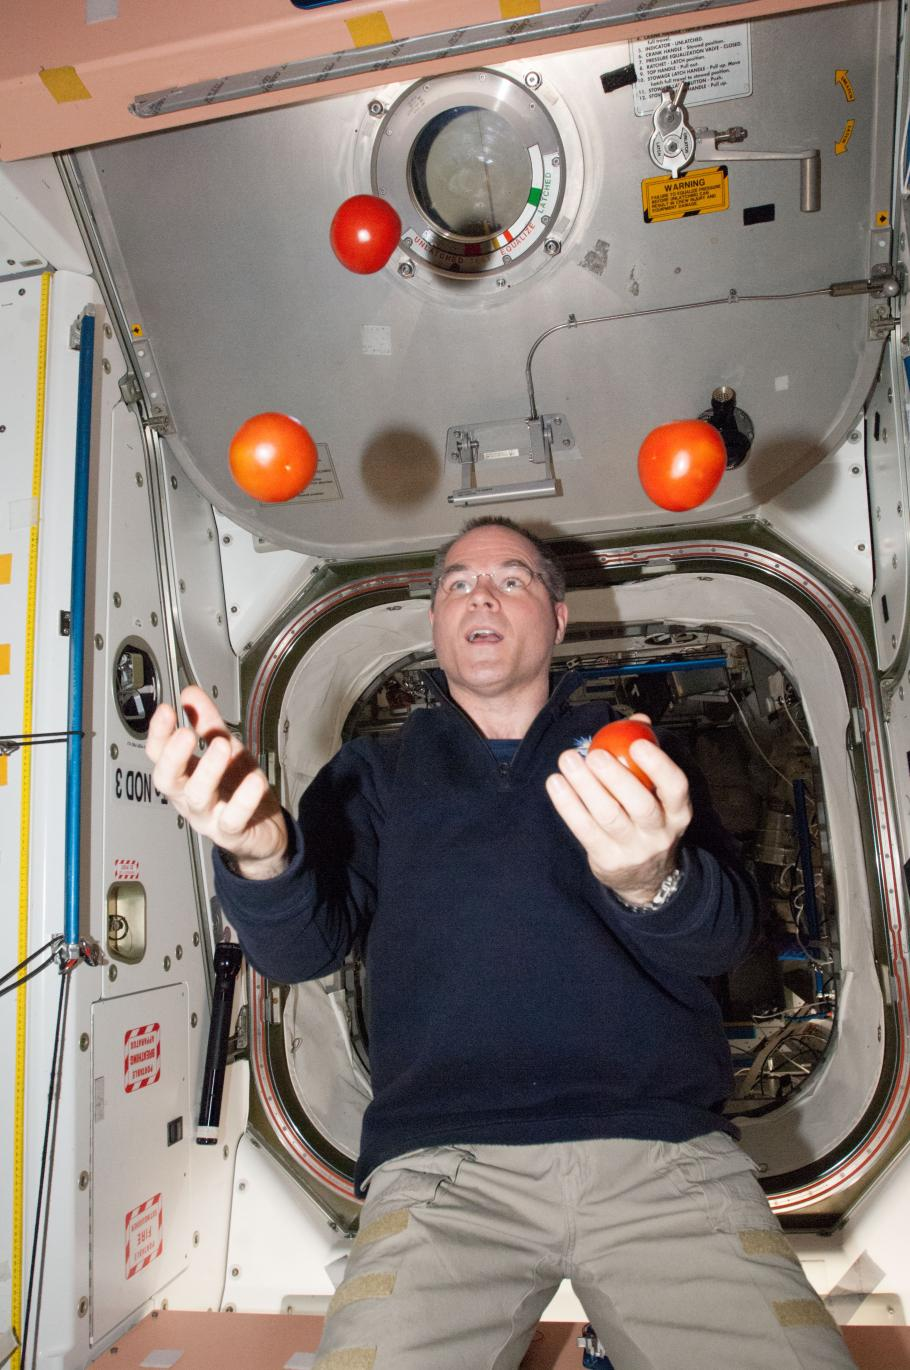 Expedition 34 Commander Kevin Ford juggles some tomatoes from a resupply spacecraft while aboard the ISS, 2013.